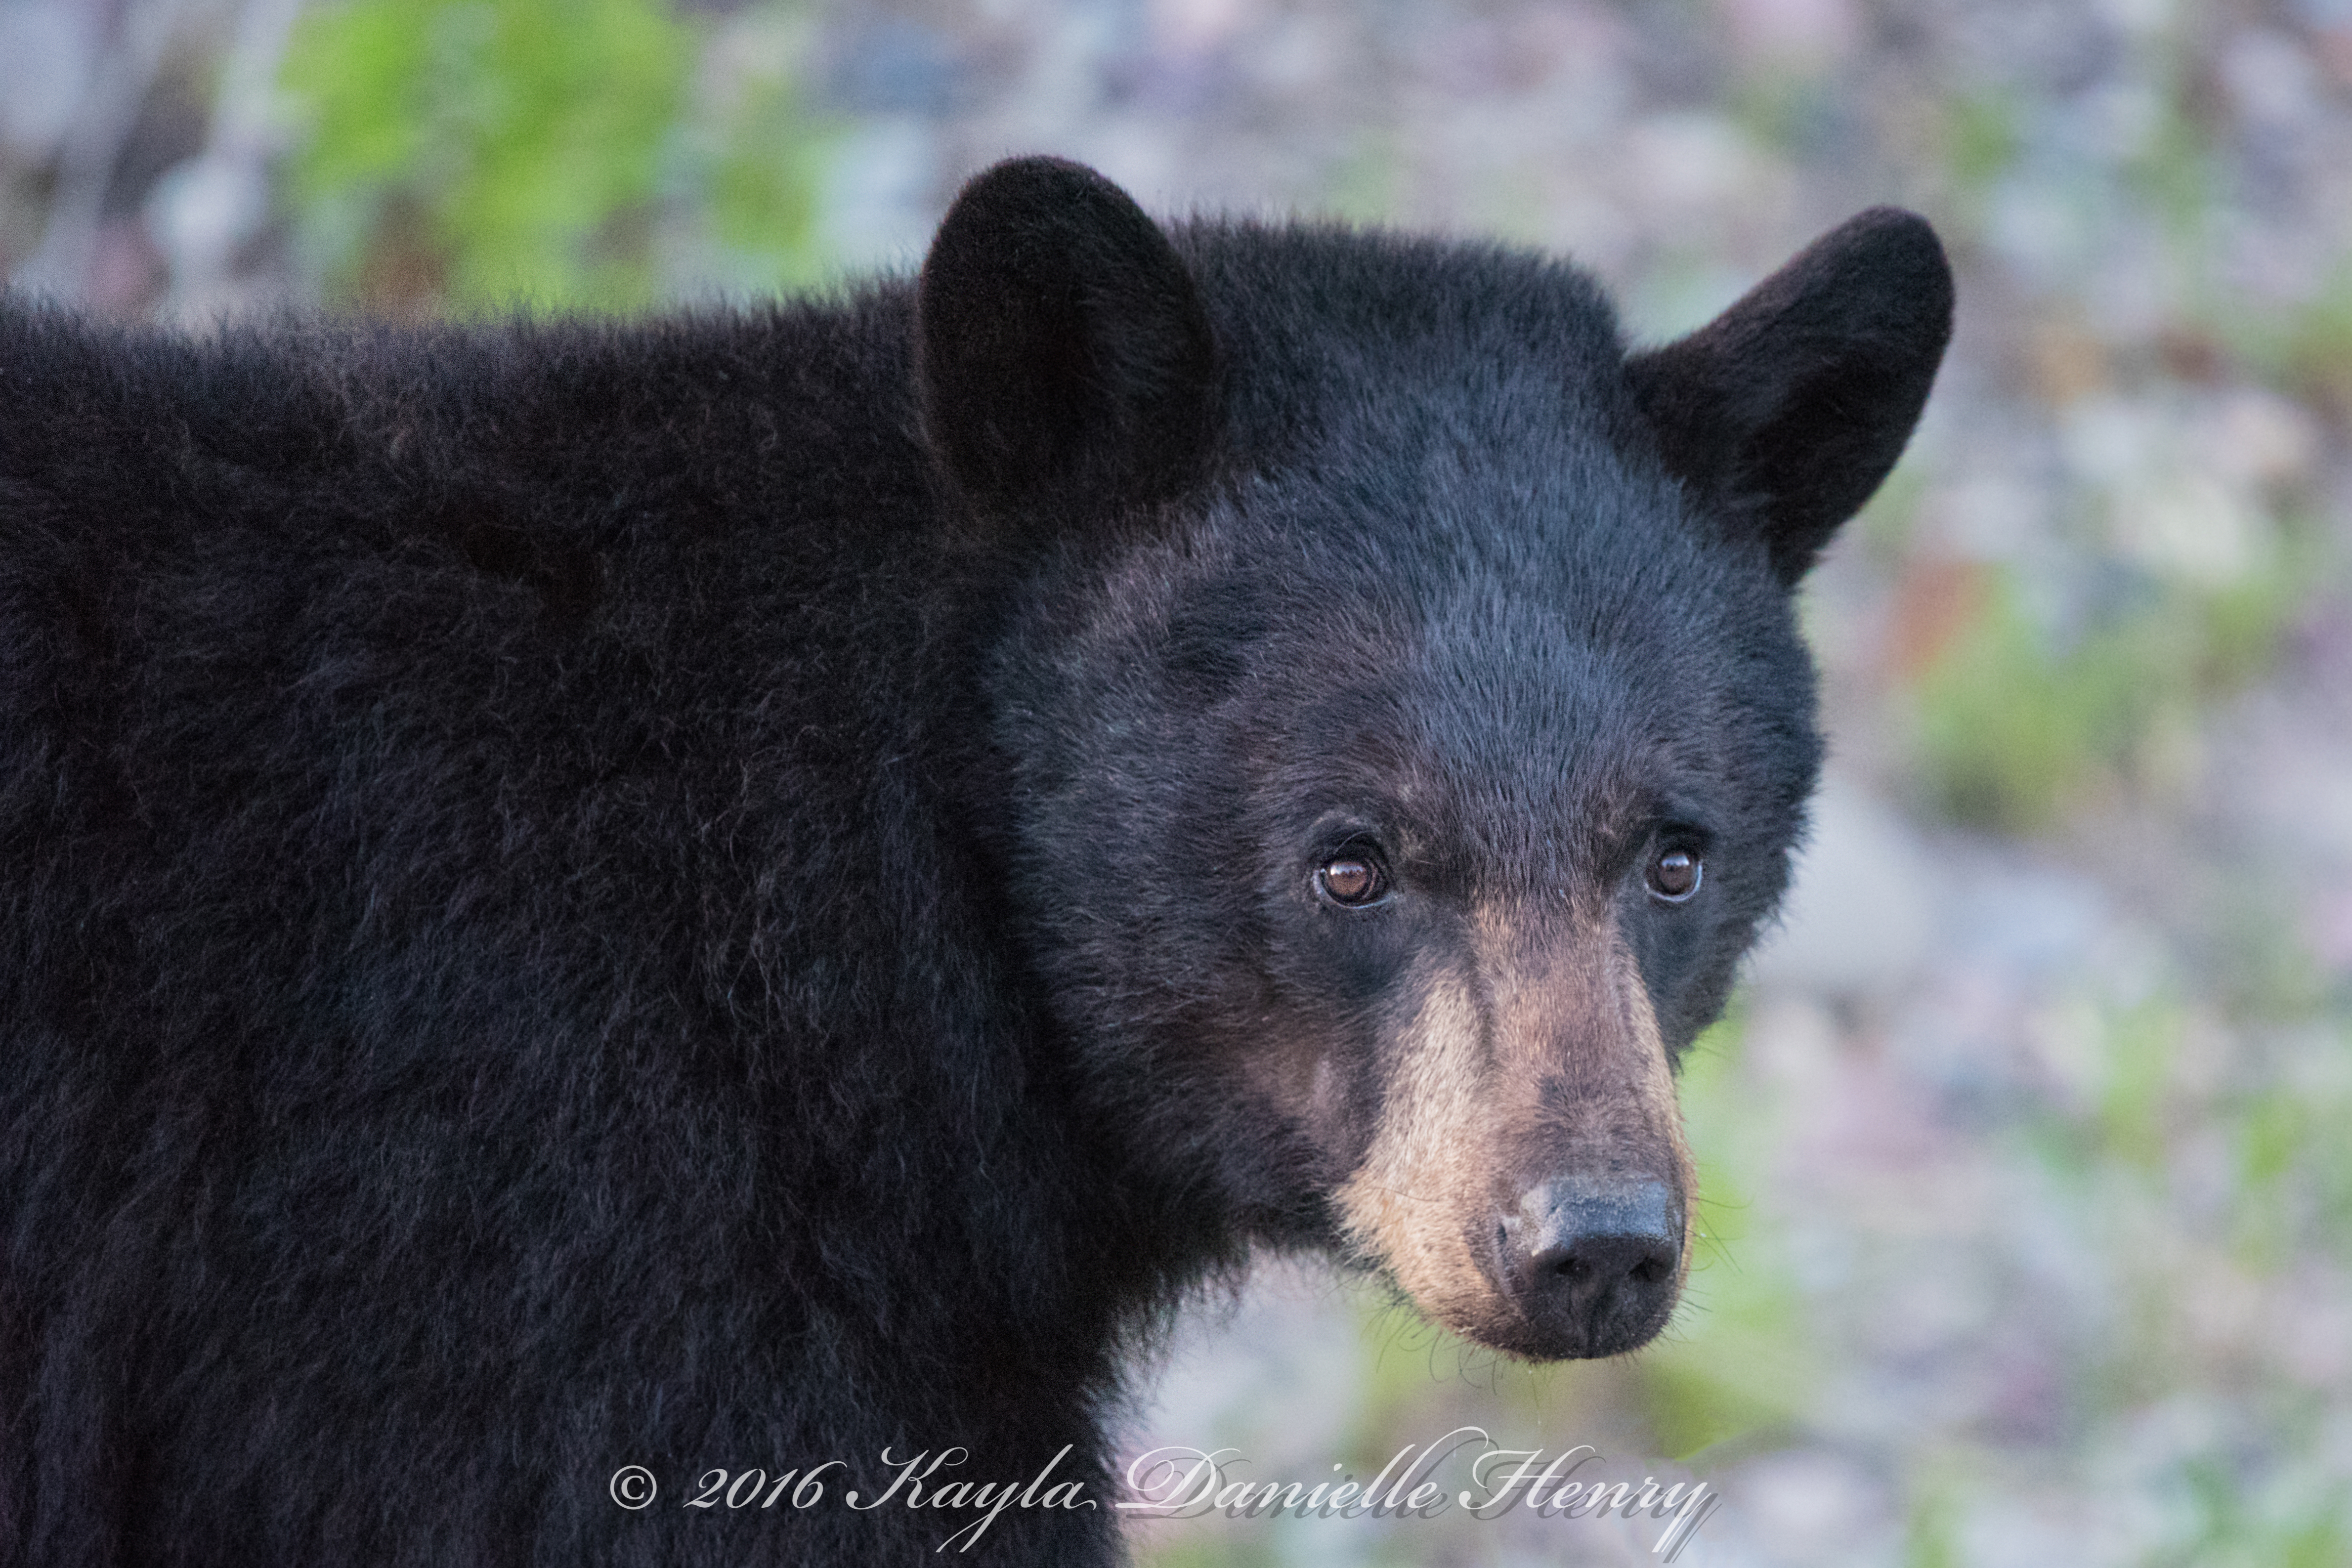 Black Bear Close Up DSC_1661 30x20 canvas-Quick Preset_4759x3173